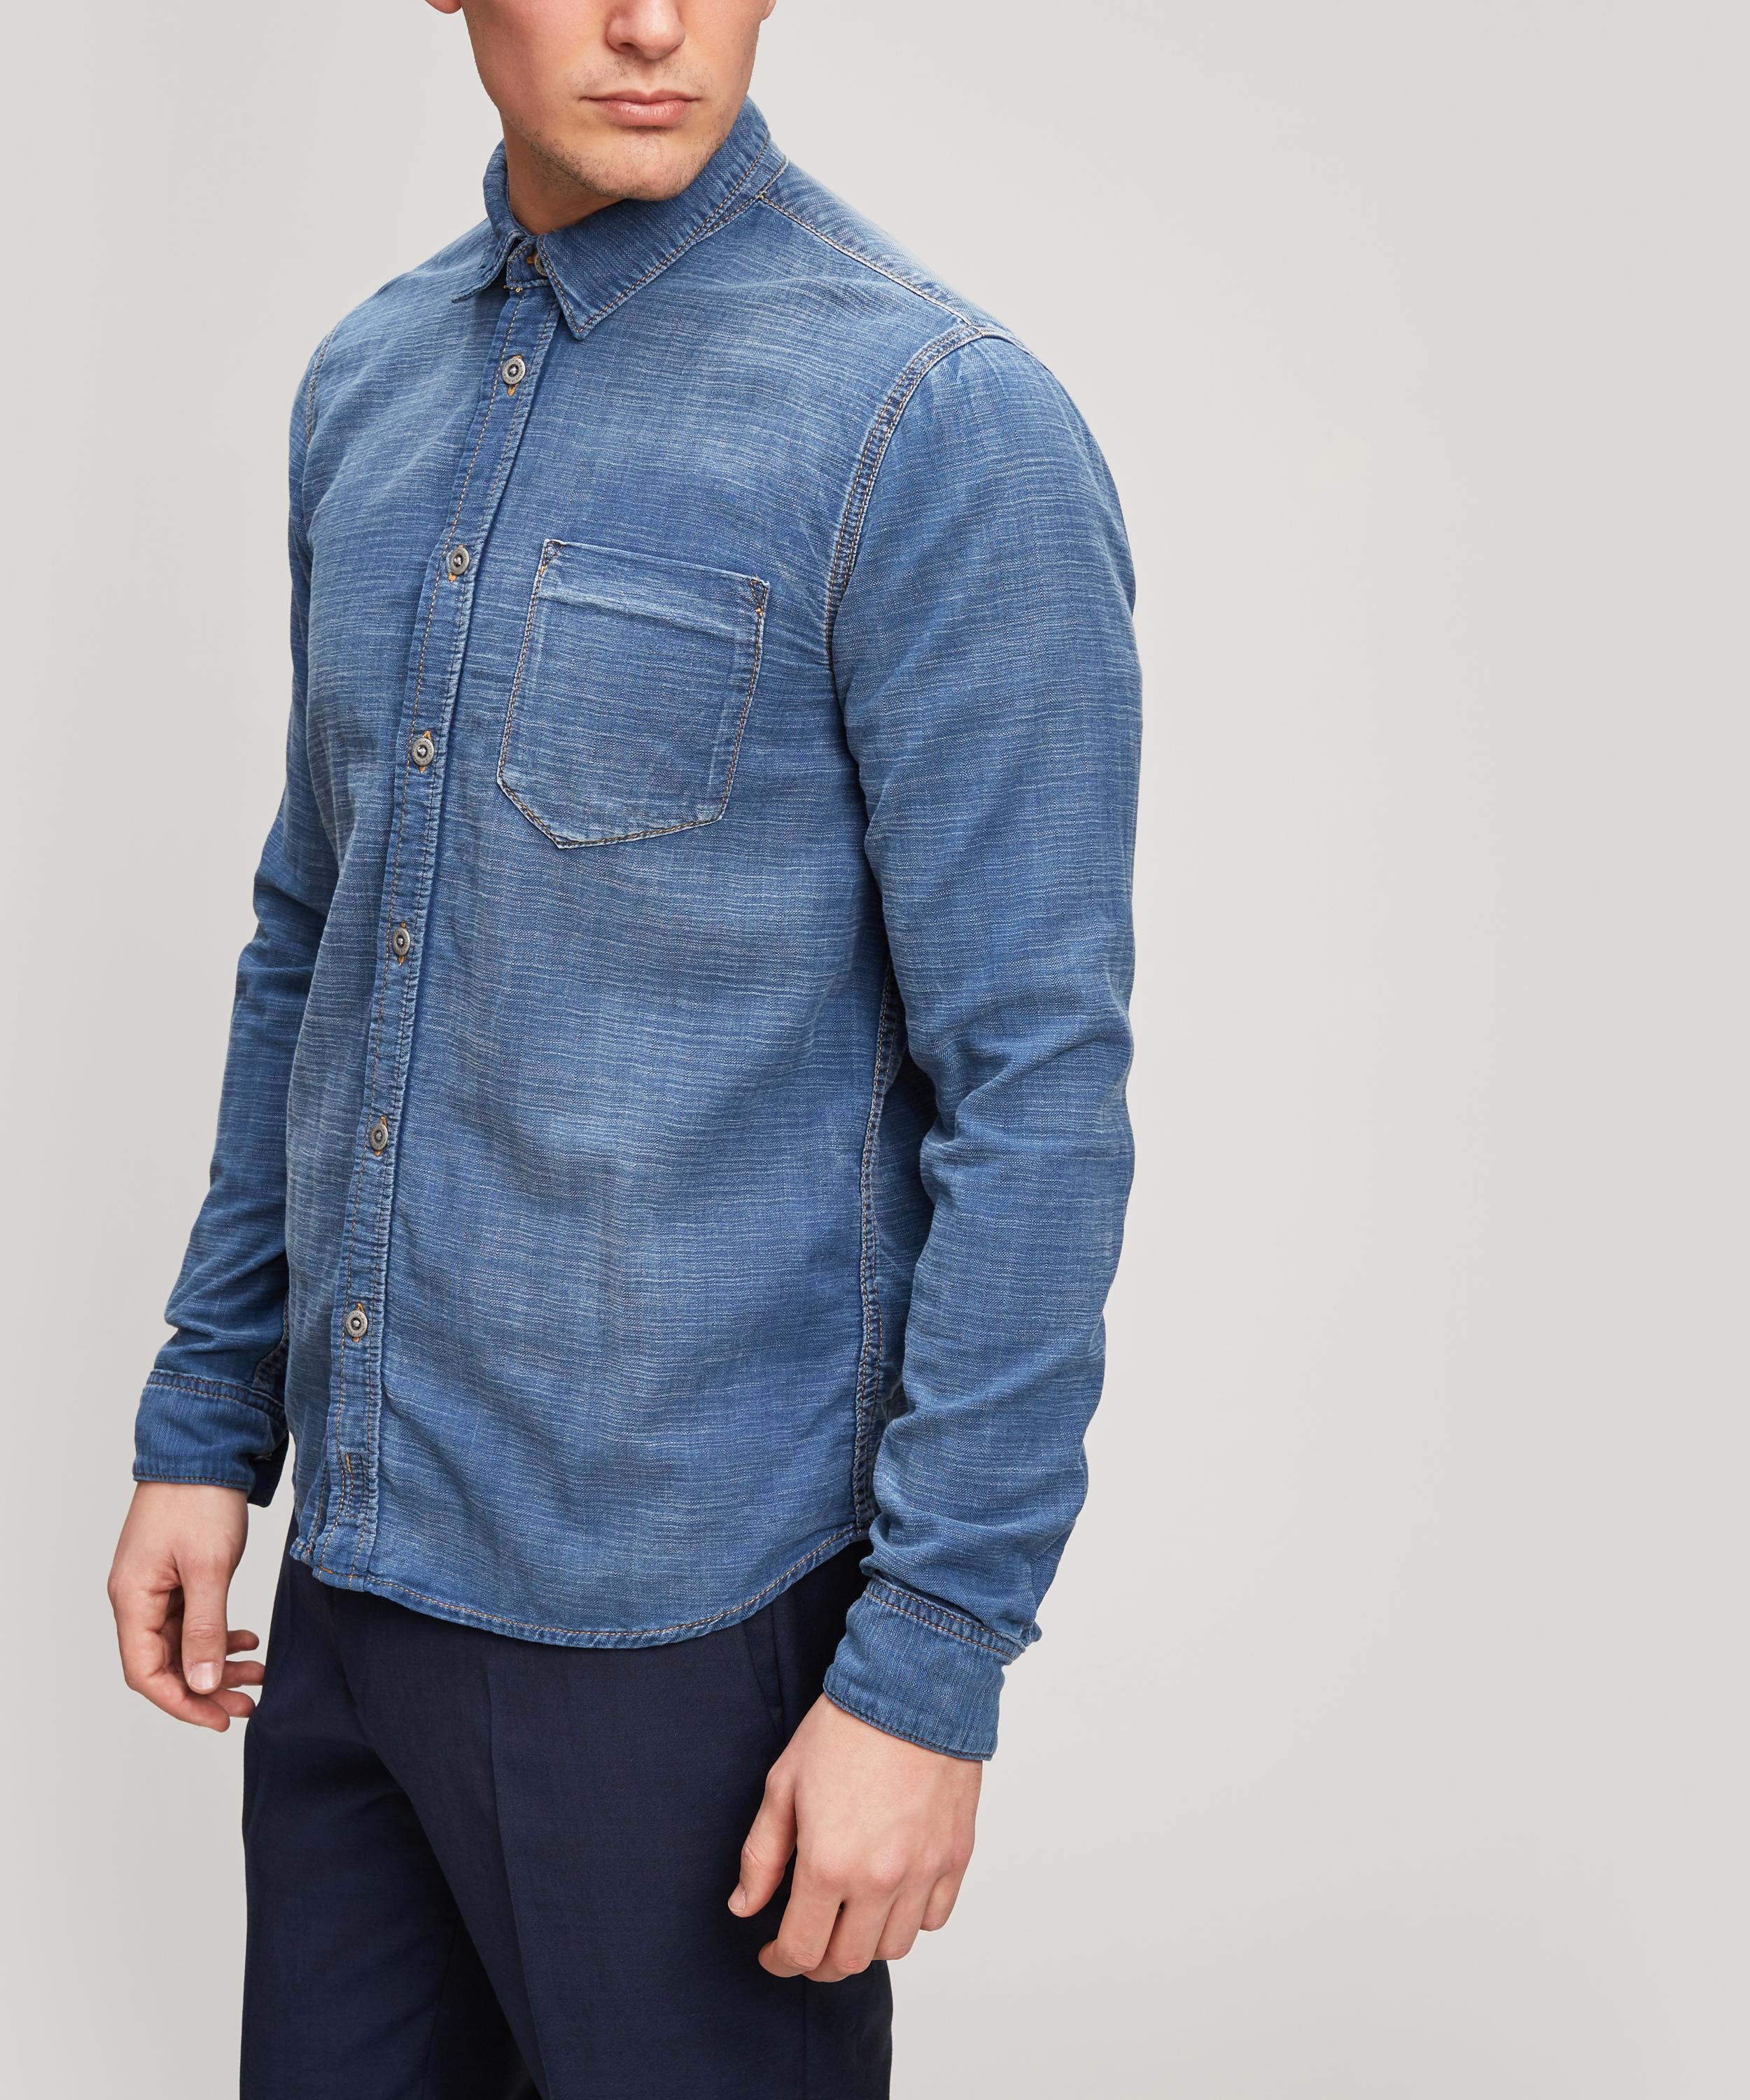 045ea4ff0d Nudie Jeans Henry Mid Chambray Shirt in Blue for Men - Lyst